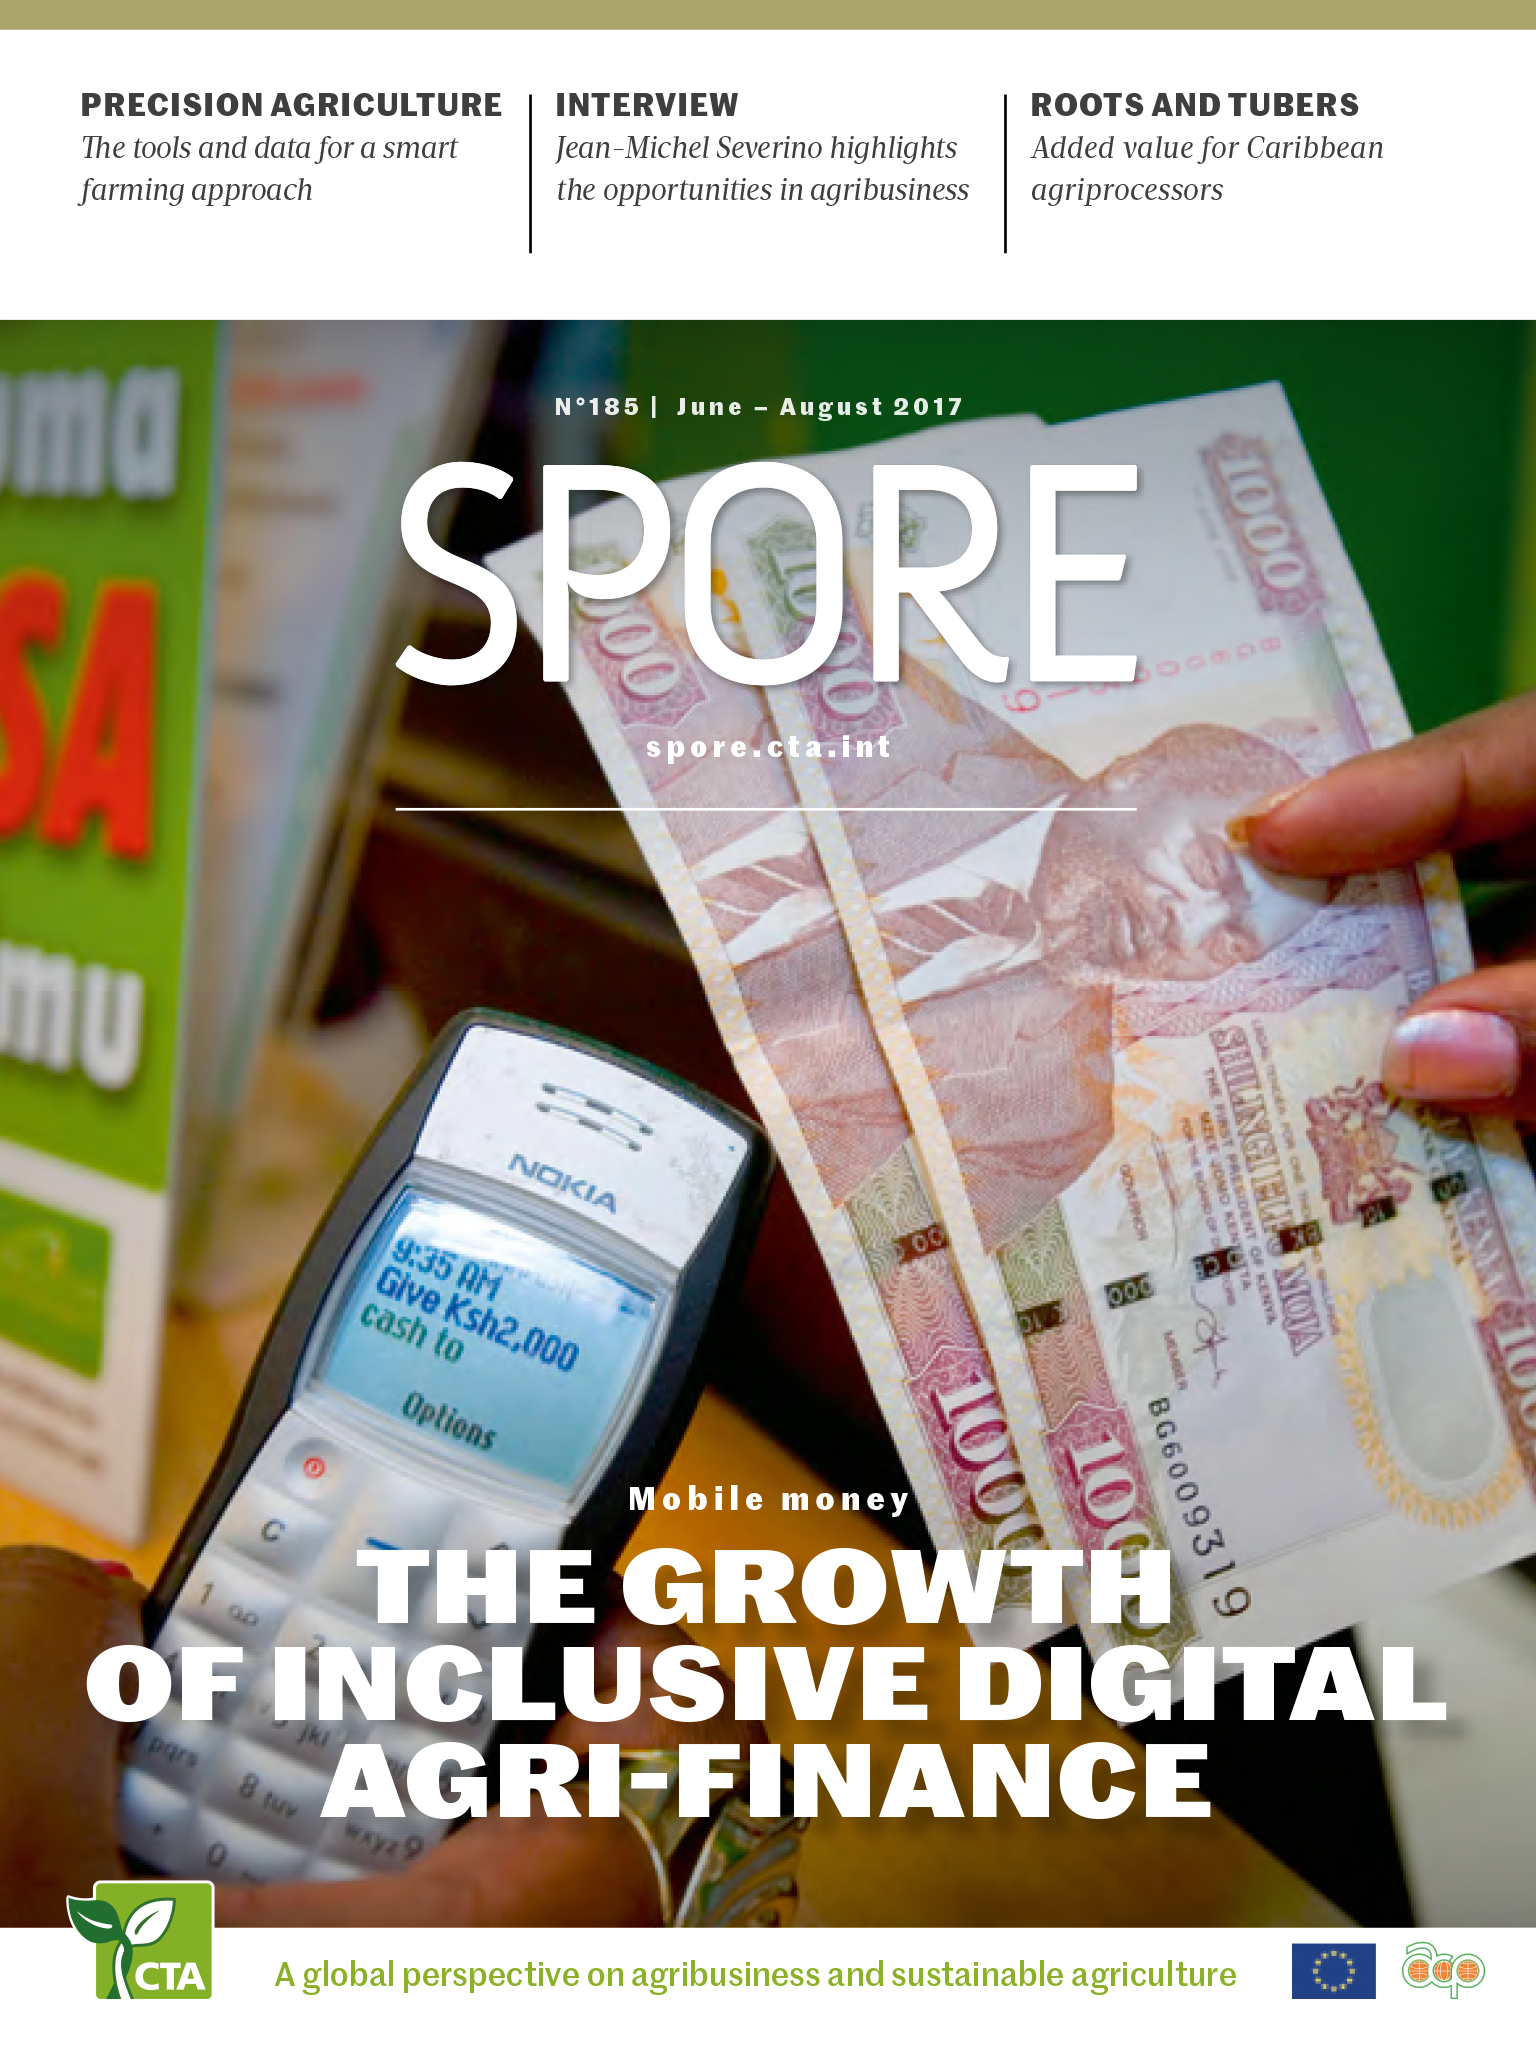 Mobile money; The growth of inclusive digital agri-finance